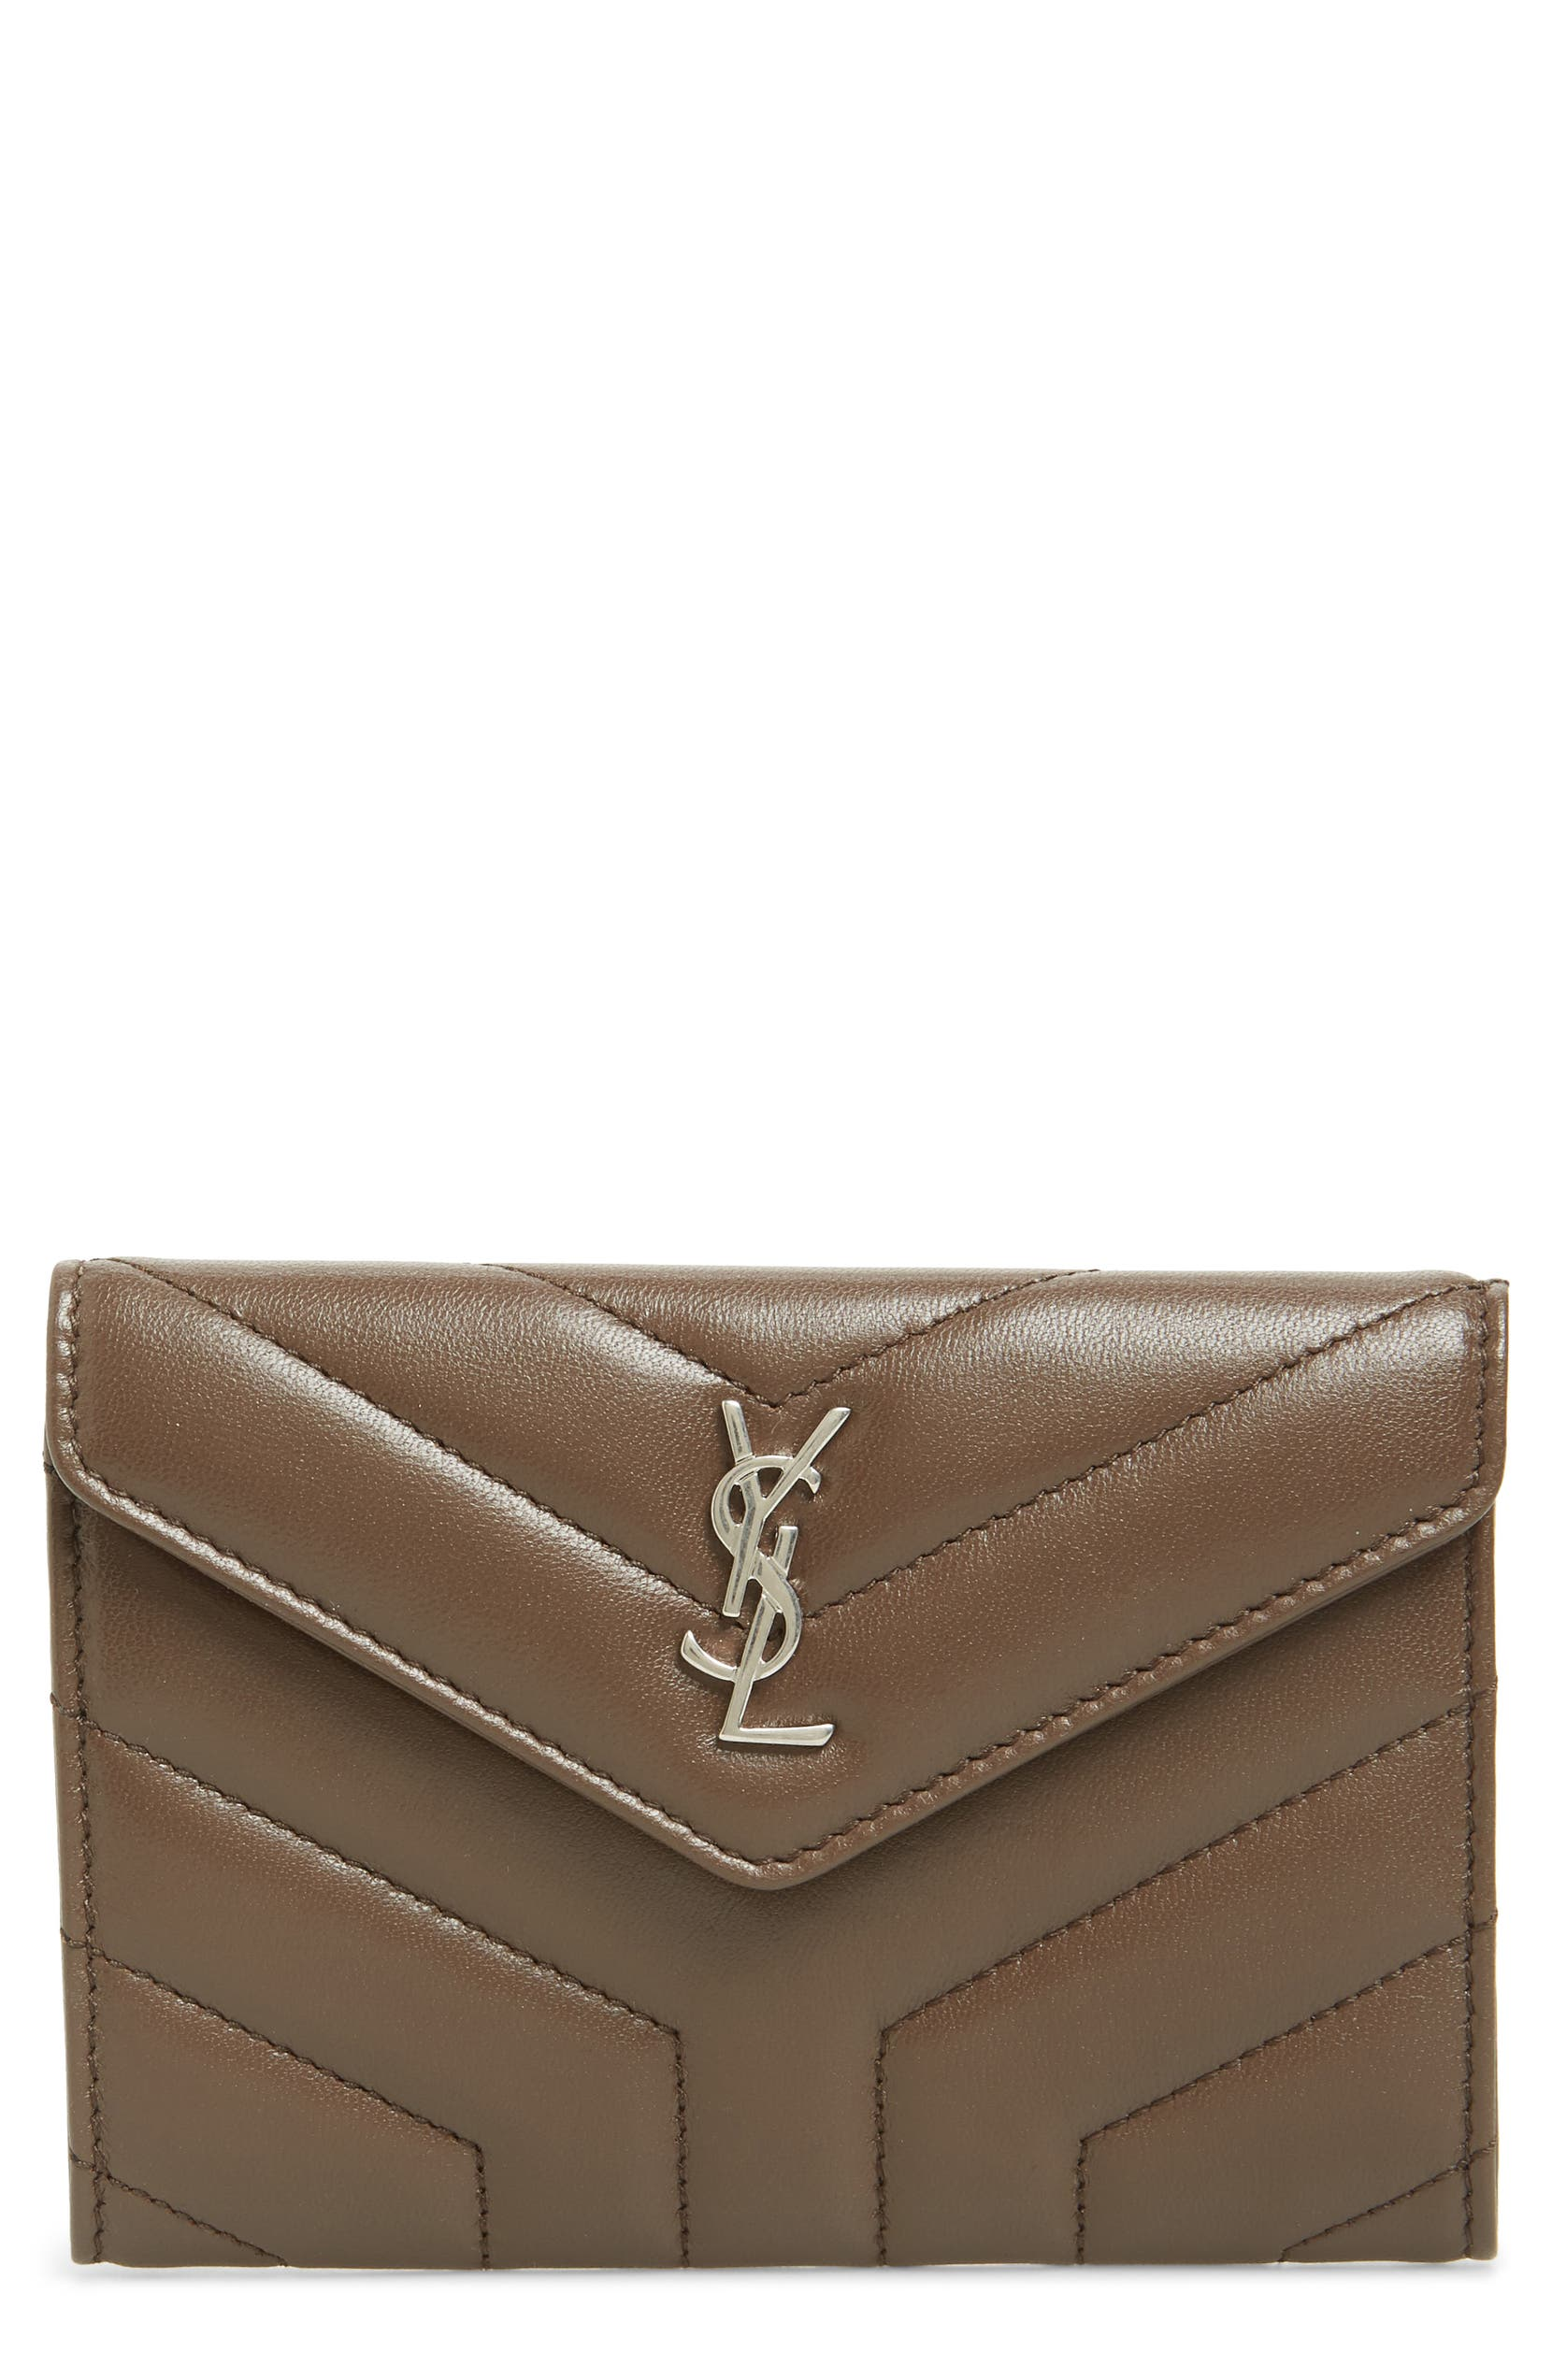 f5a864d883 Small Loulou Matelassé Leather Wallet